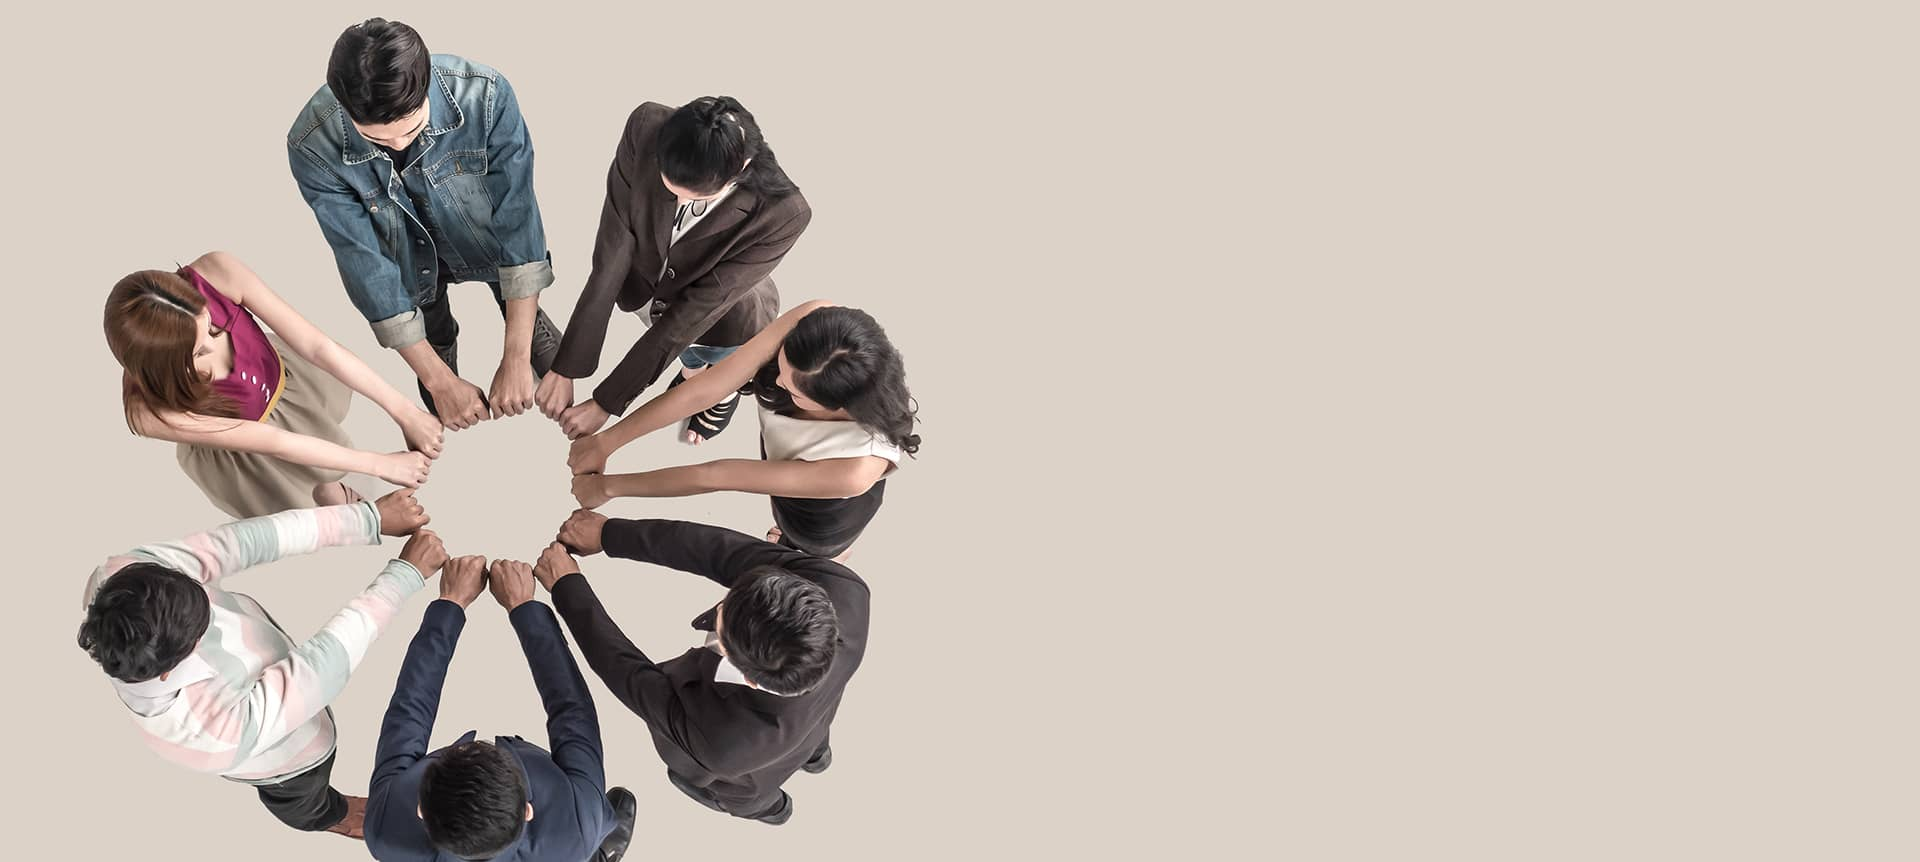 A group of employees huddled around in a circle and extending their arms out to form the shape of a circle.